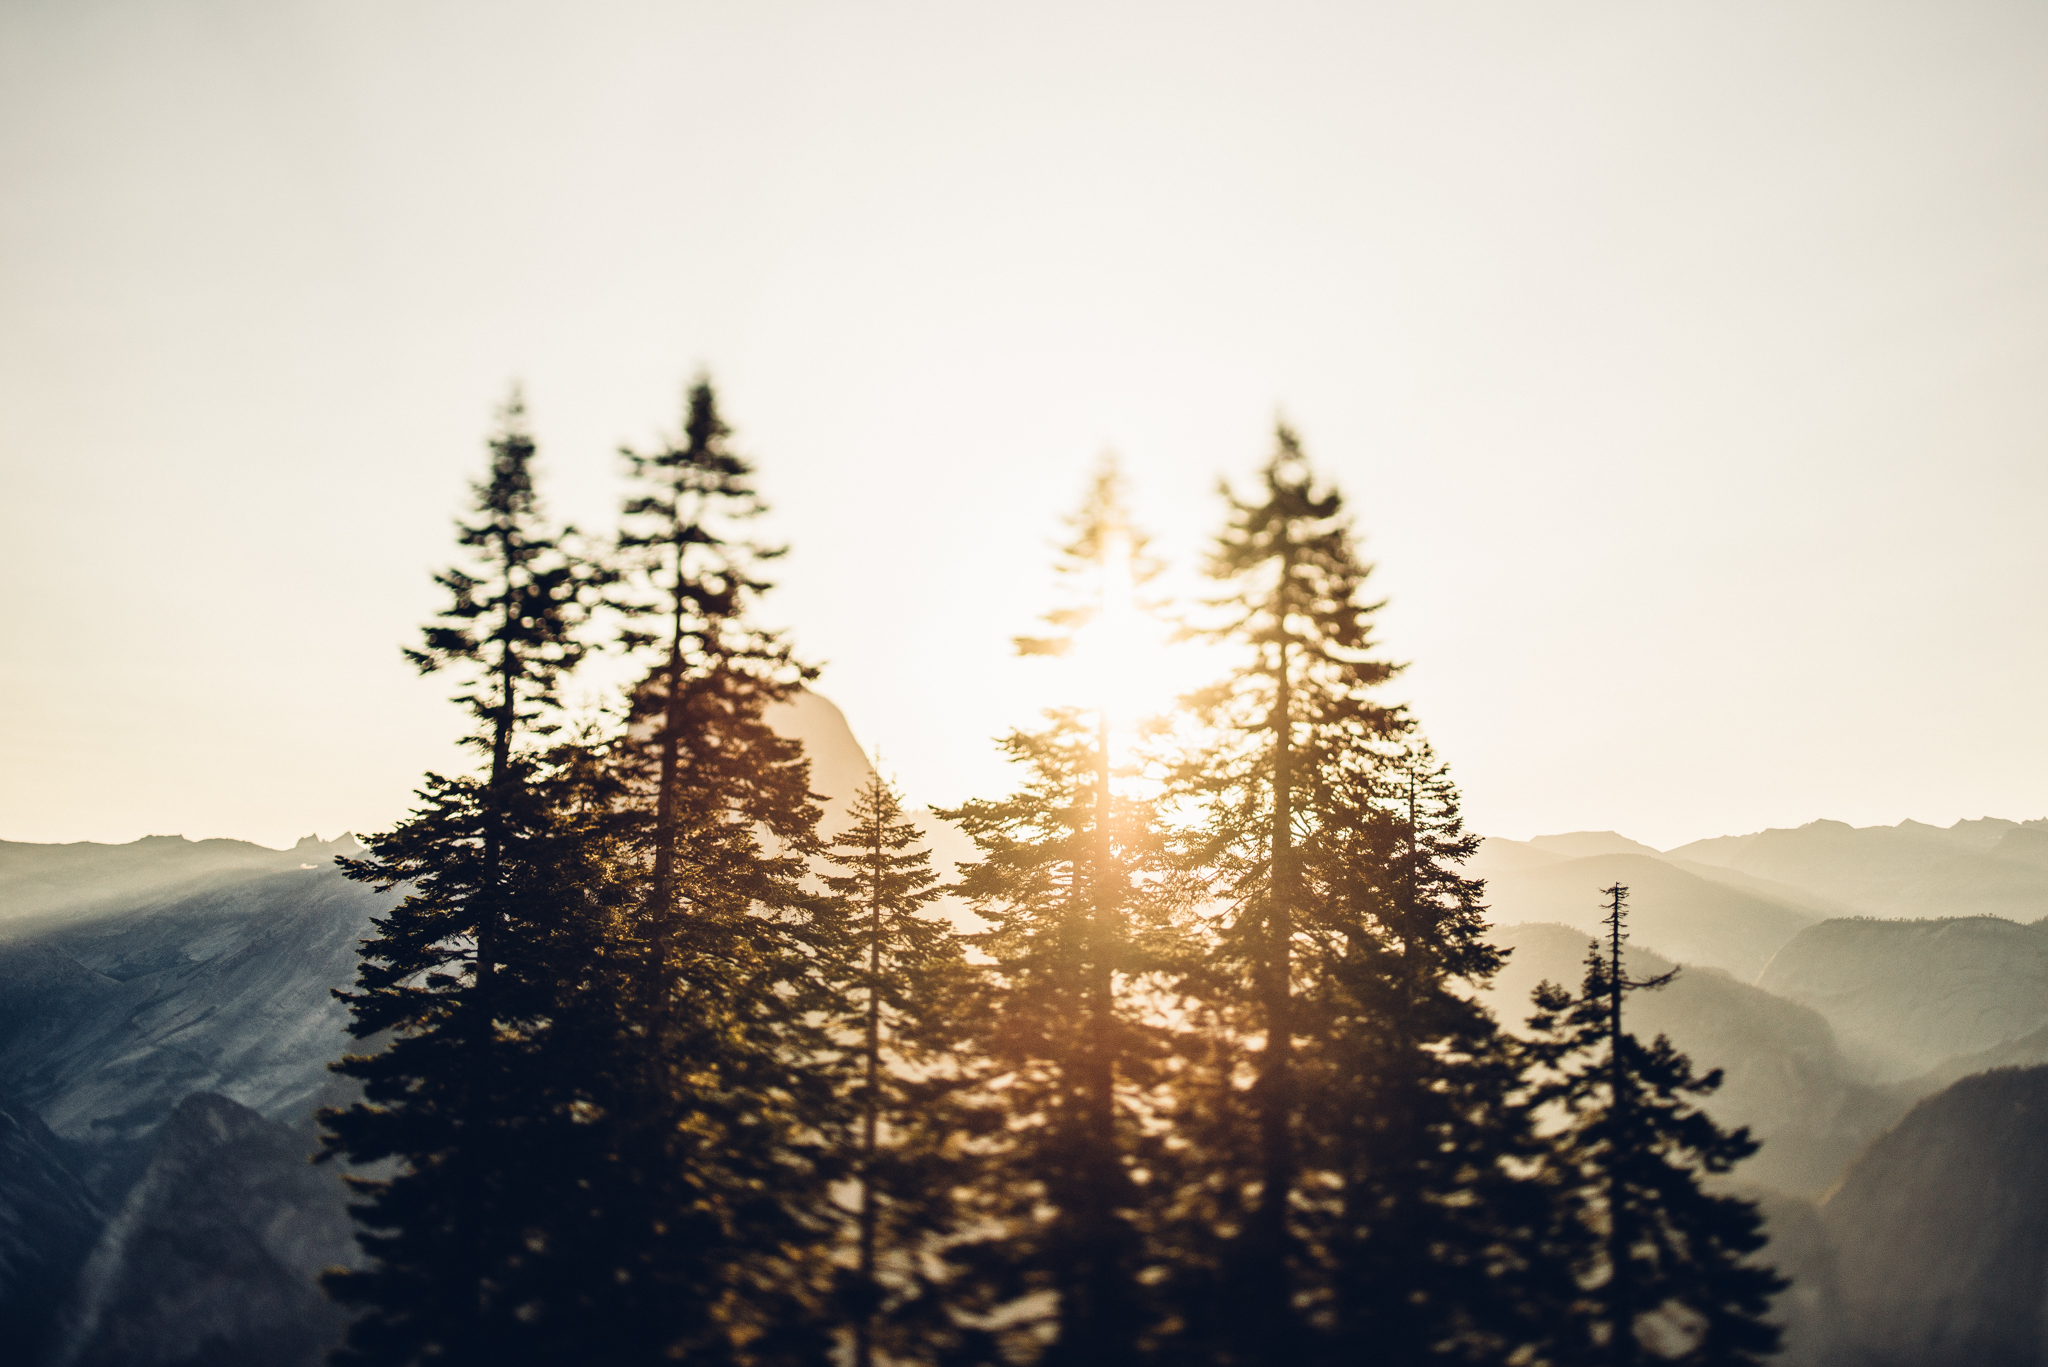 ©Isaiah & Taylor Photography - Los Angeles Destination Wedding Photographer - Yosemite National Park Hiking Adventure Engagement - Glacier Point Sunrise-017.jpg